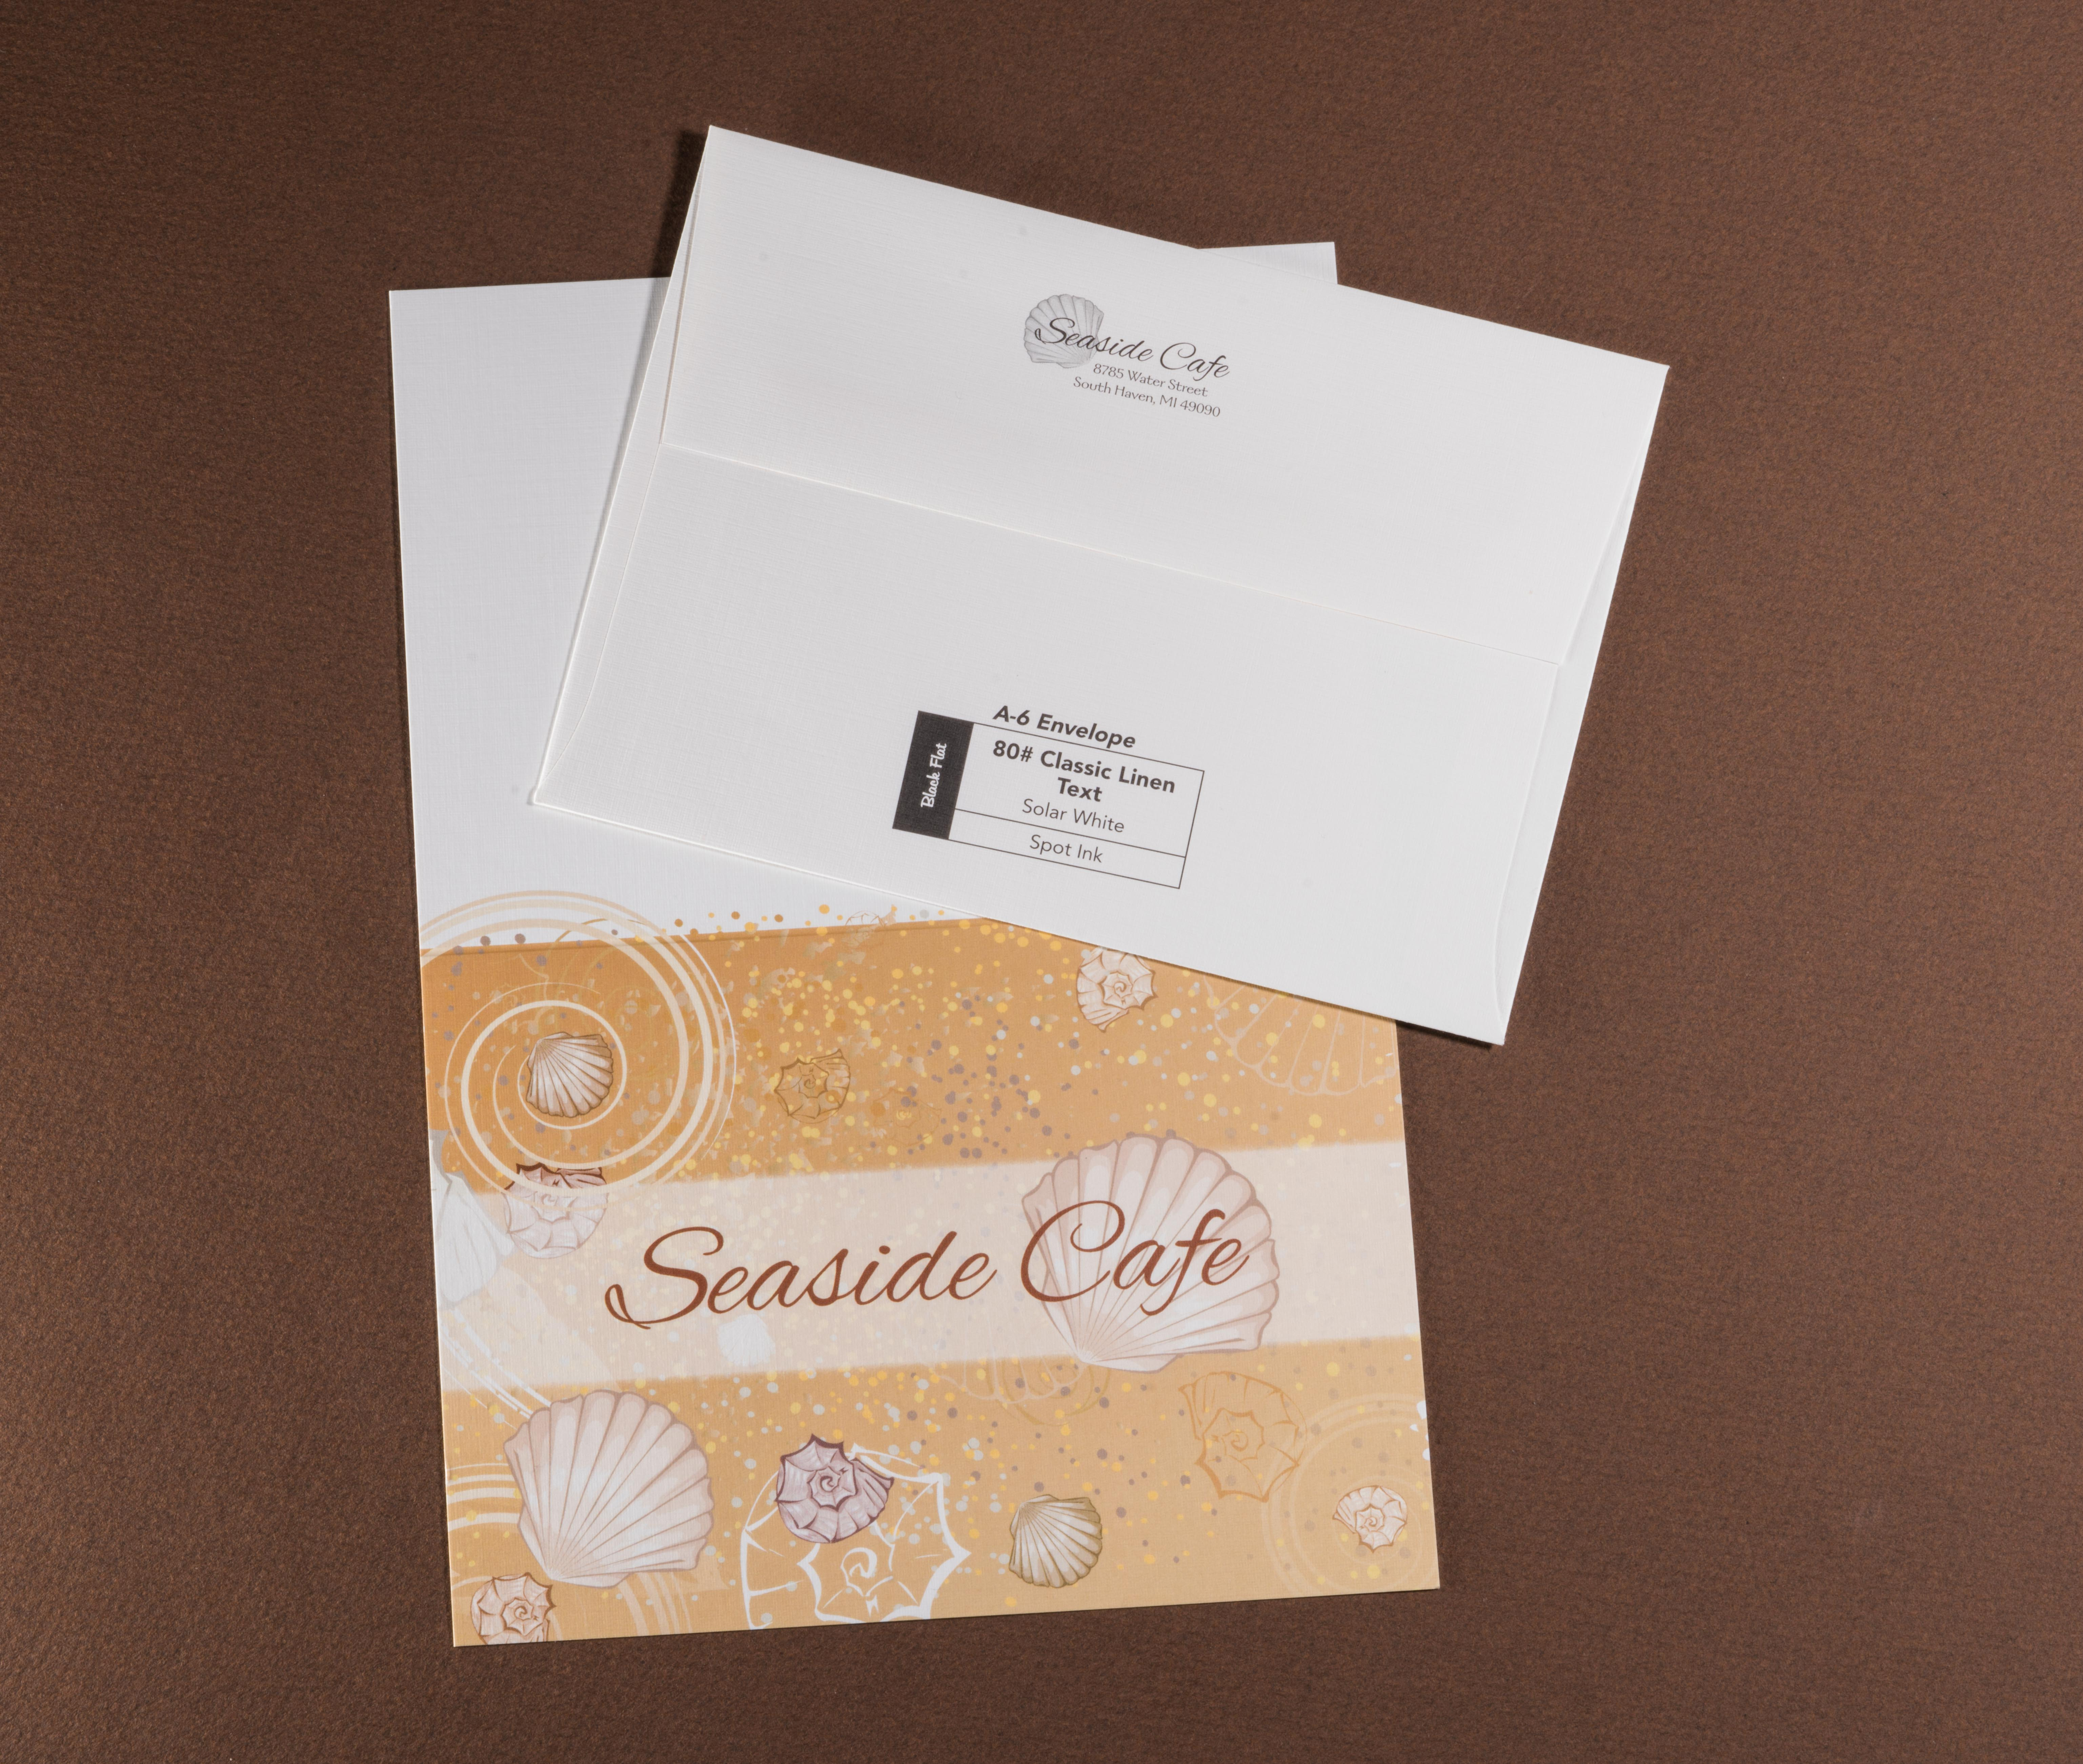 note cards envelopes - Business Card Envelopes